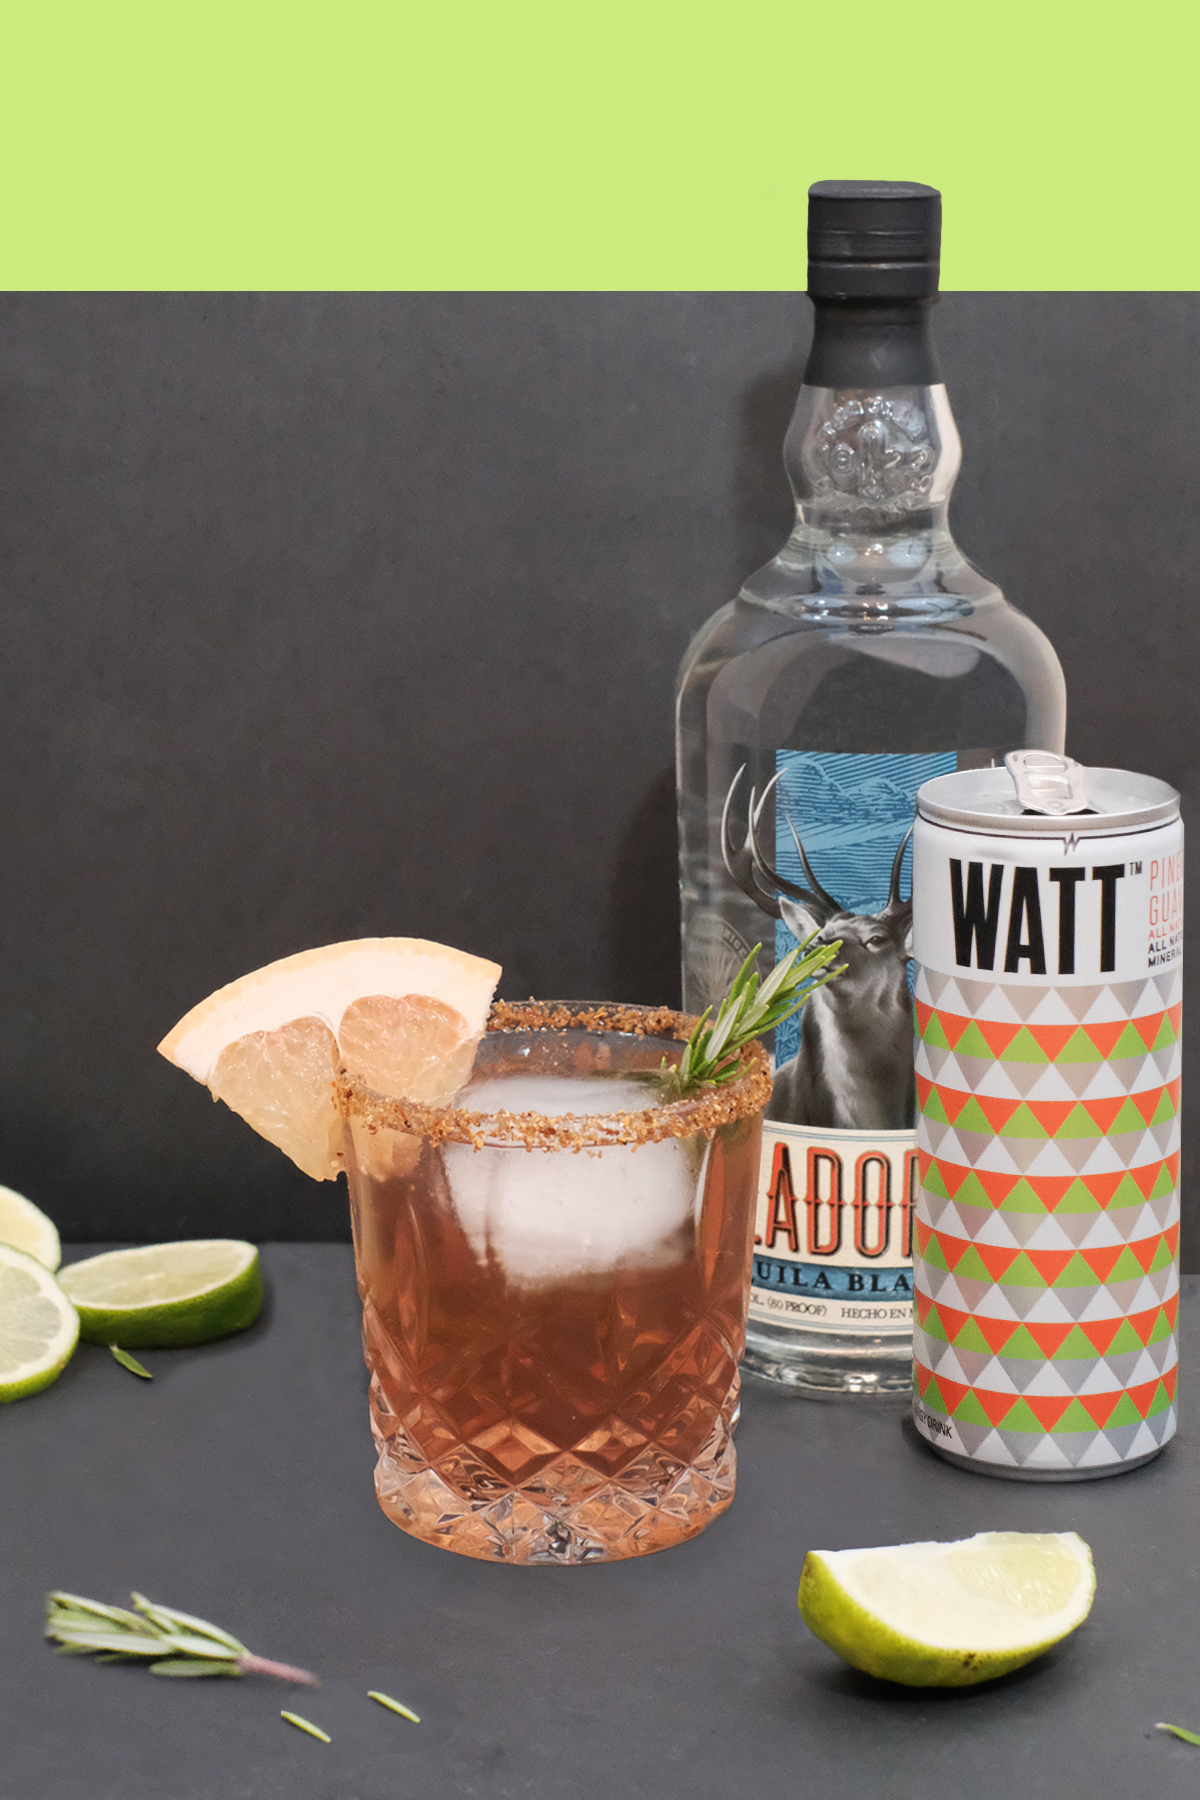 WATT PALOMA - INGREDIENTS1.5oz Your Favorite Tequila1oz Grapefruit juice WATT Pineberry Guava GLASSHighballHOW TO MAKE THE WATT PALOMAPour the tequila over ice and fill the glass to the brim with WATT Pineberry Guava. Finish with a splash of grapefruit juice. Pinkies out.